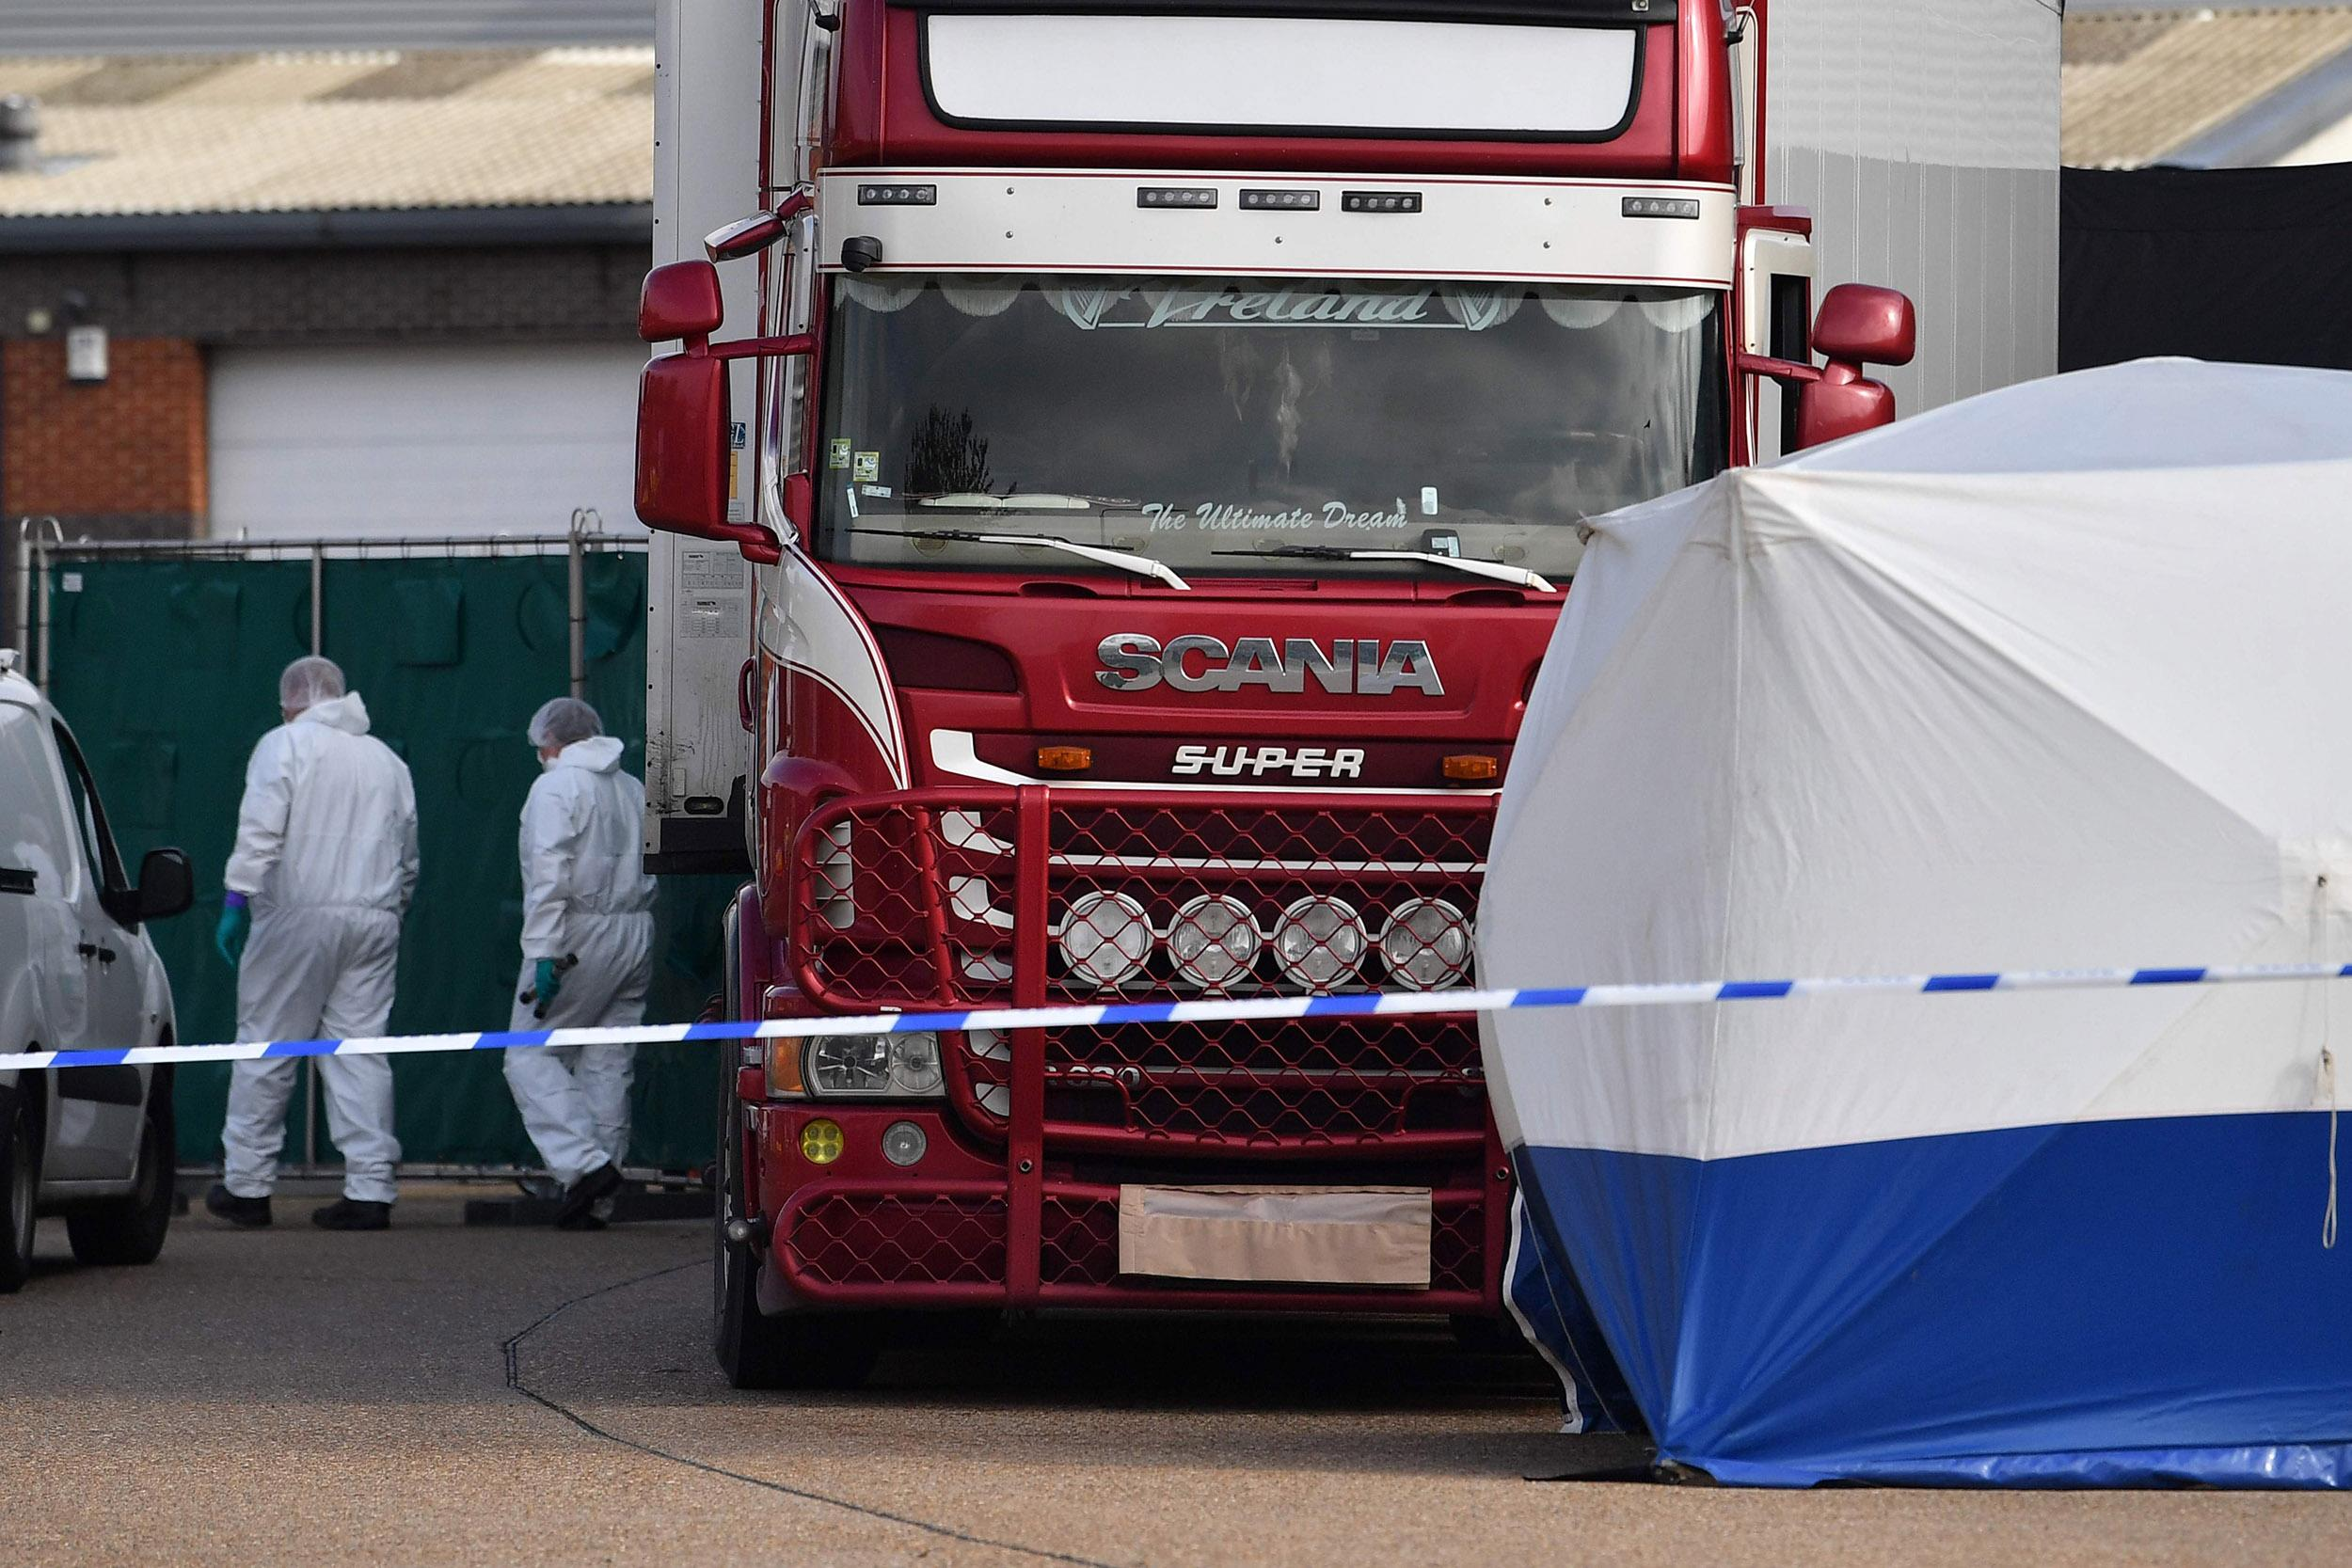 British truck driver pleads guilty in deaths of 39 Vietnamese migrants found in container